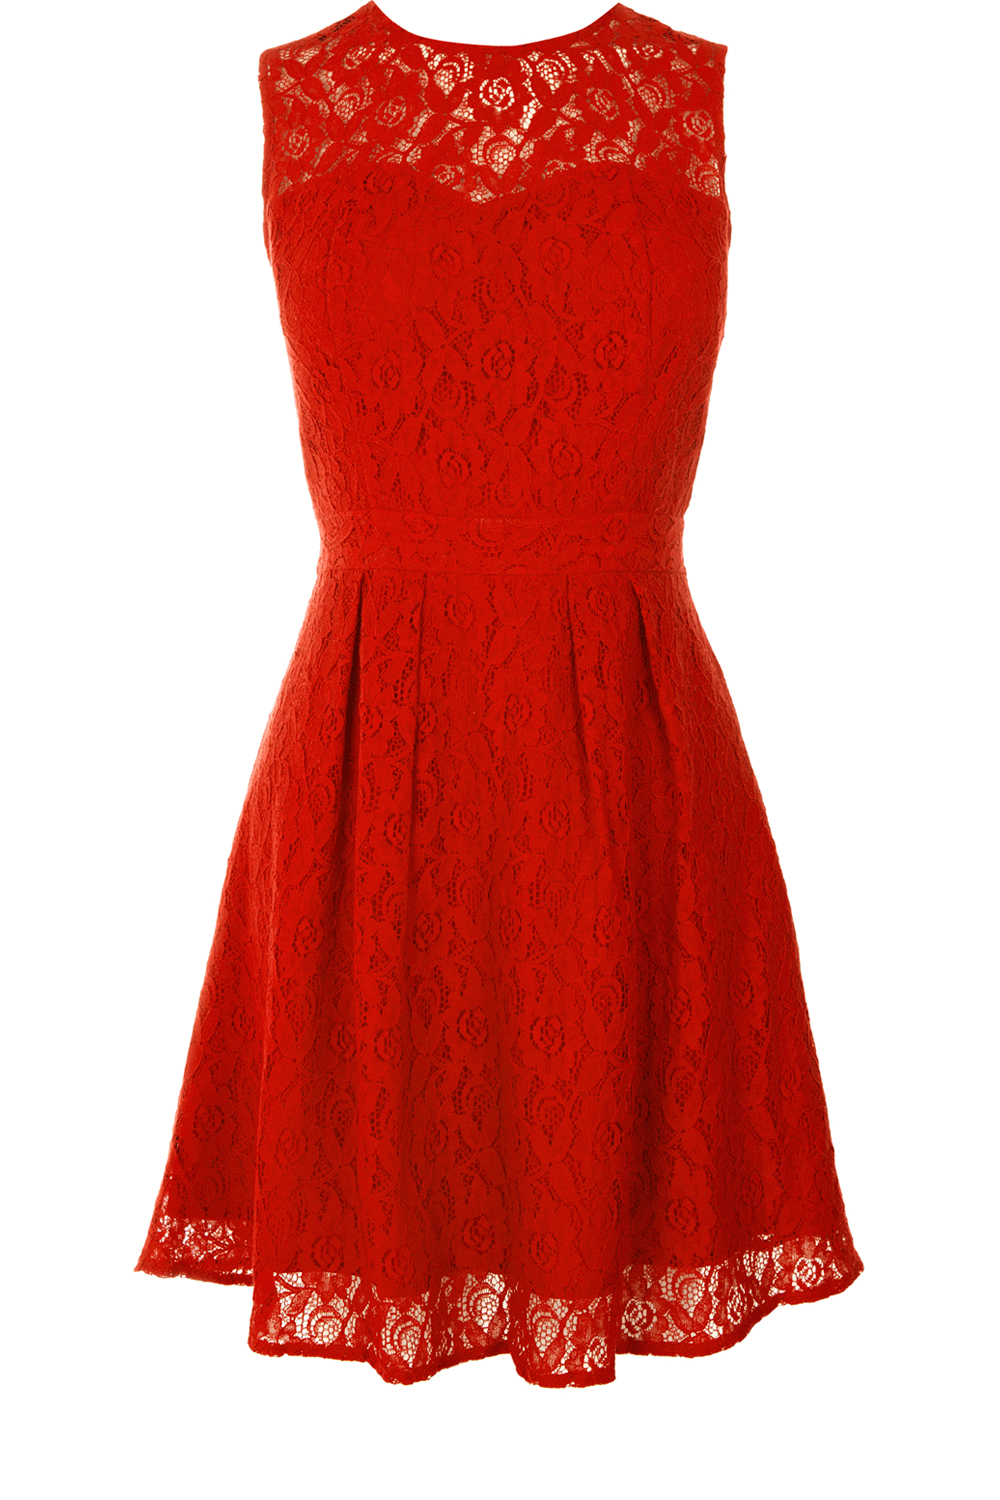 Oasis all dresses rich red lace sweetheart dress womens fashion